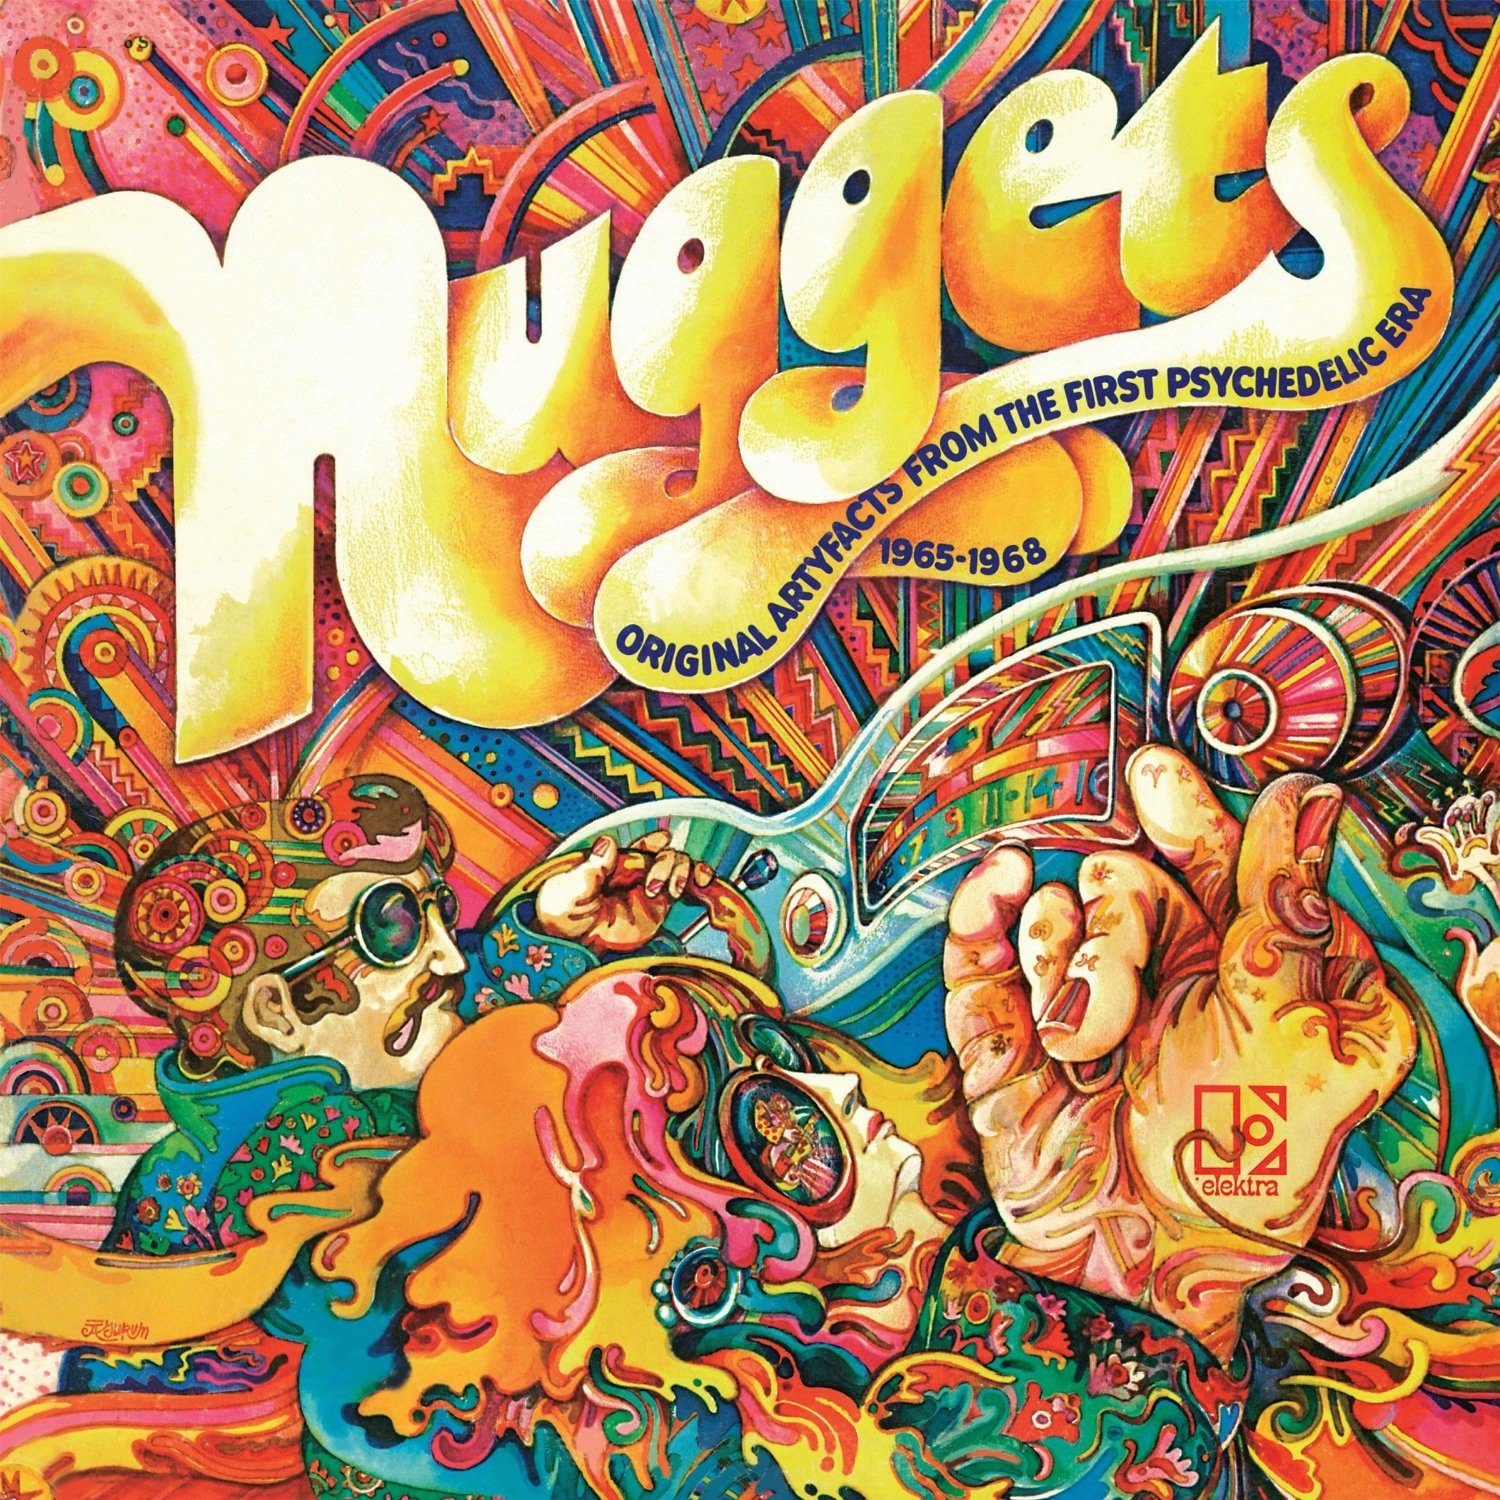 Nuggets: Original Artyfacts From The First Psychedelic Era (1965-1968)